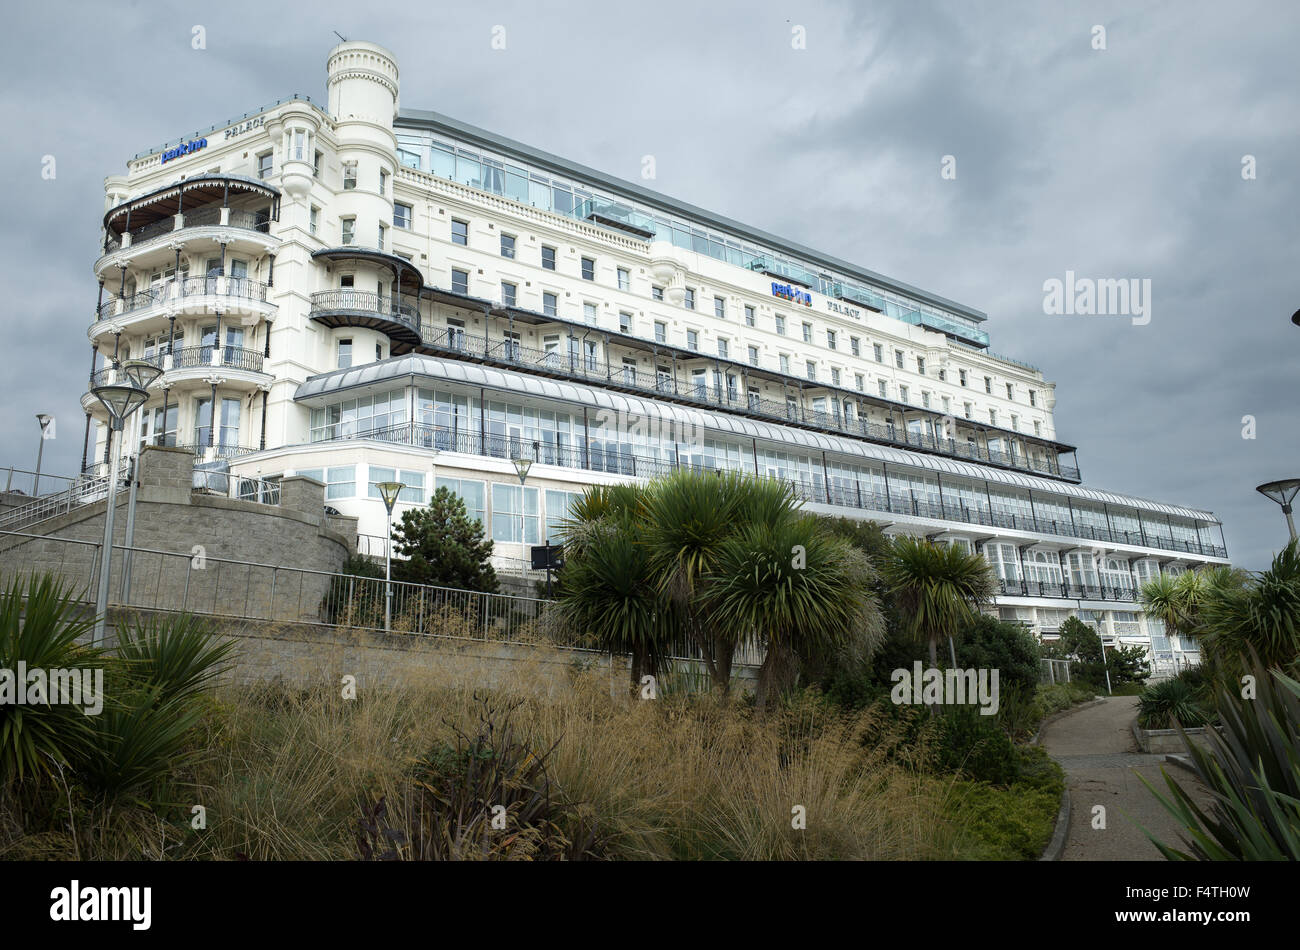 palace hotel park inn on the cliff top at southend on. Black Bedroom Furniture Sets. Home Design Ideas